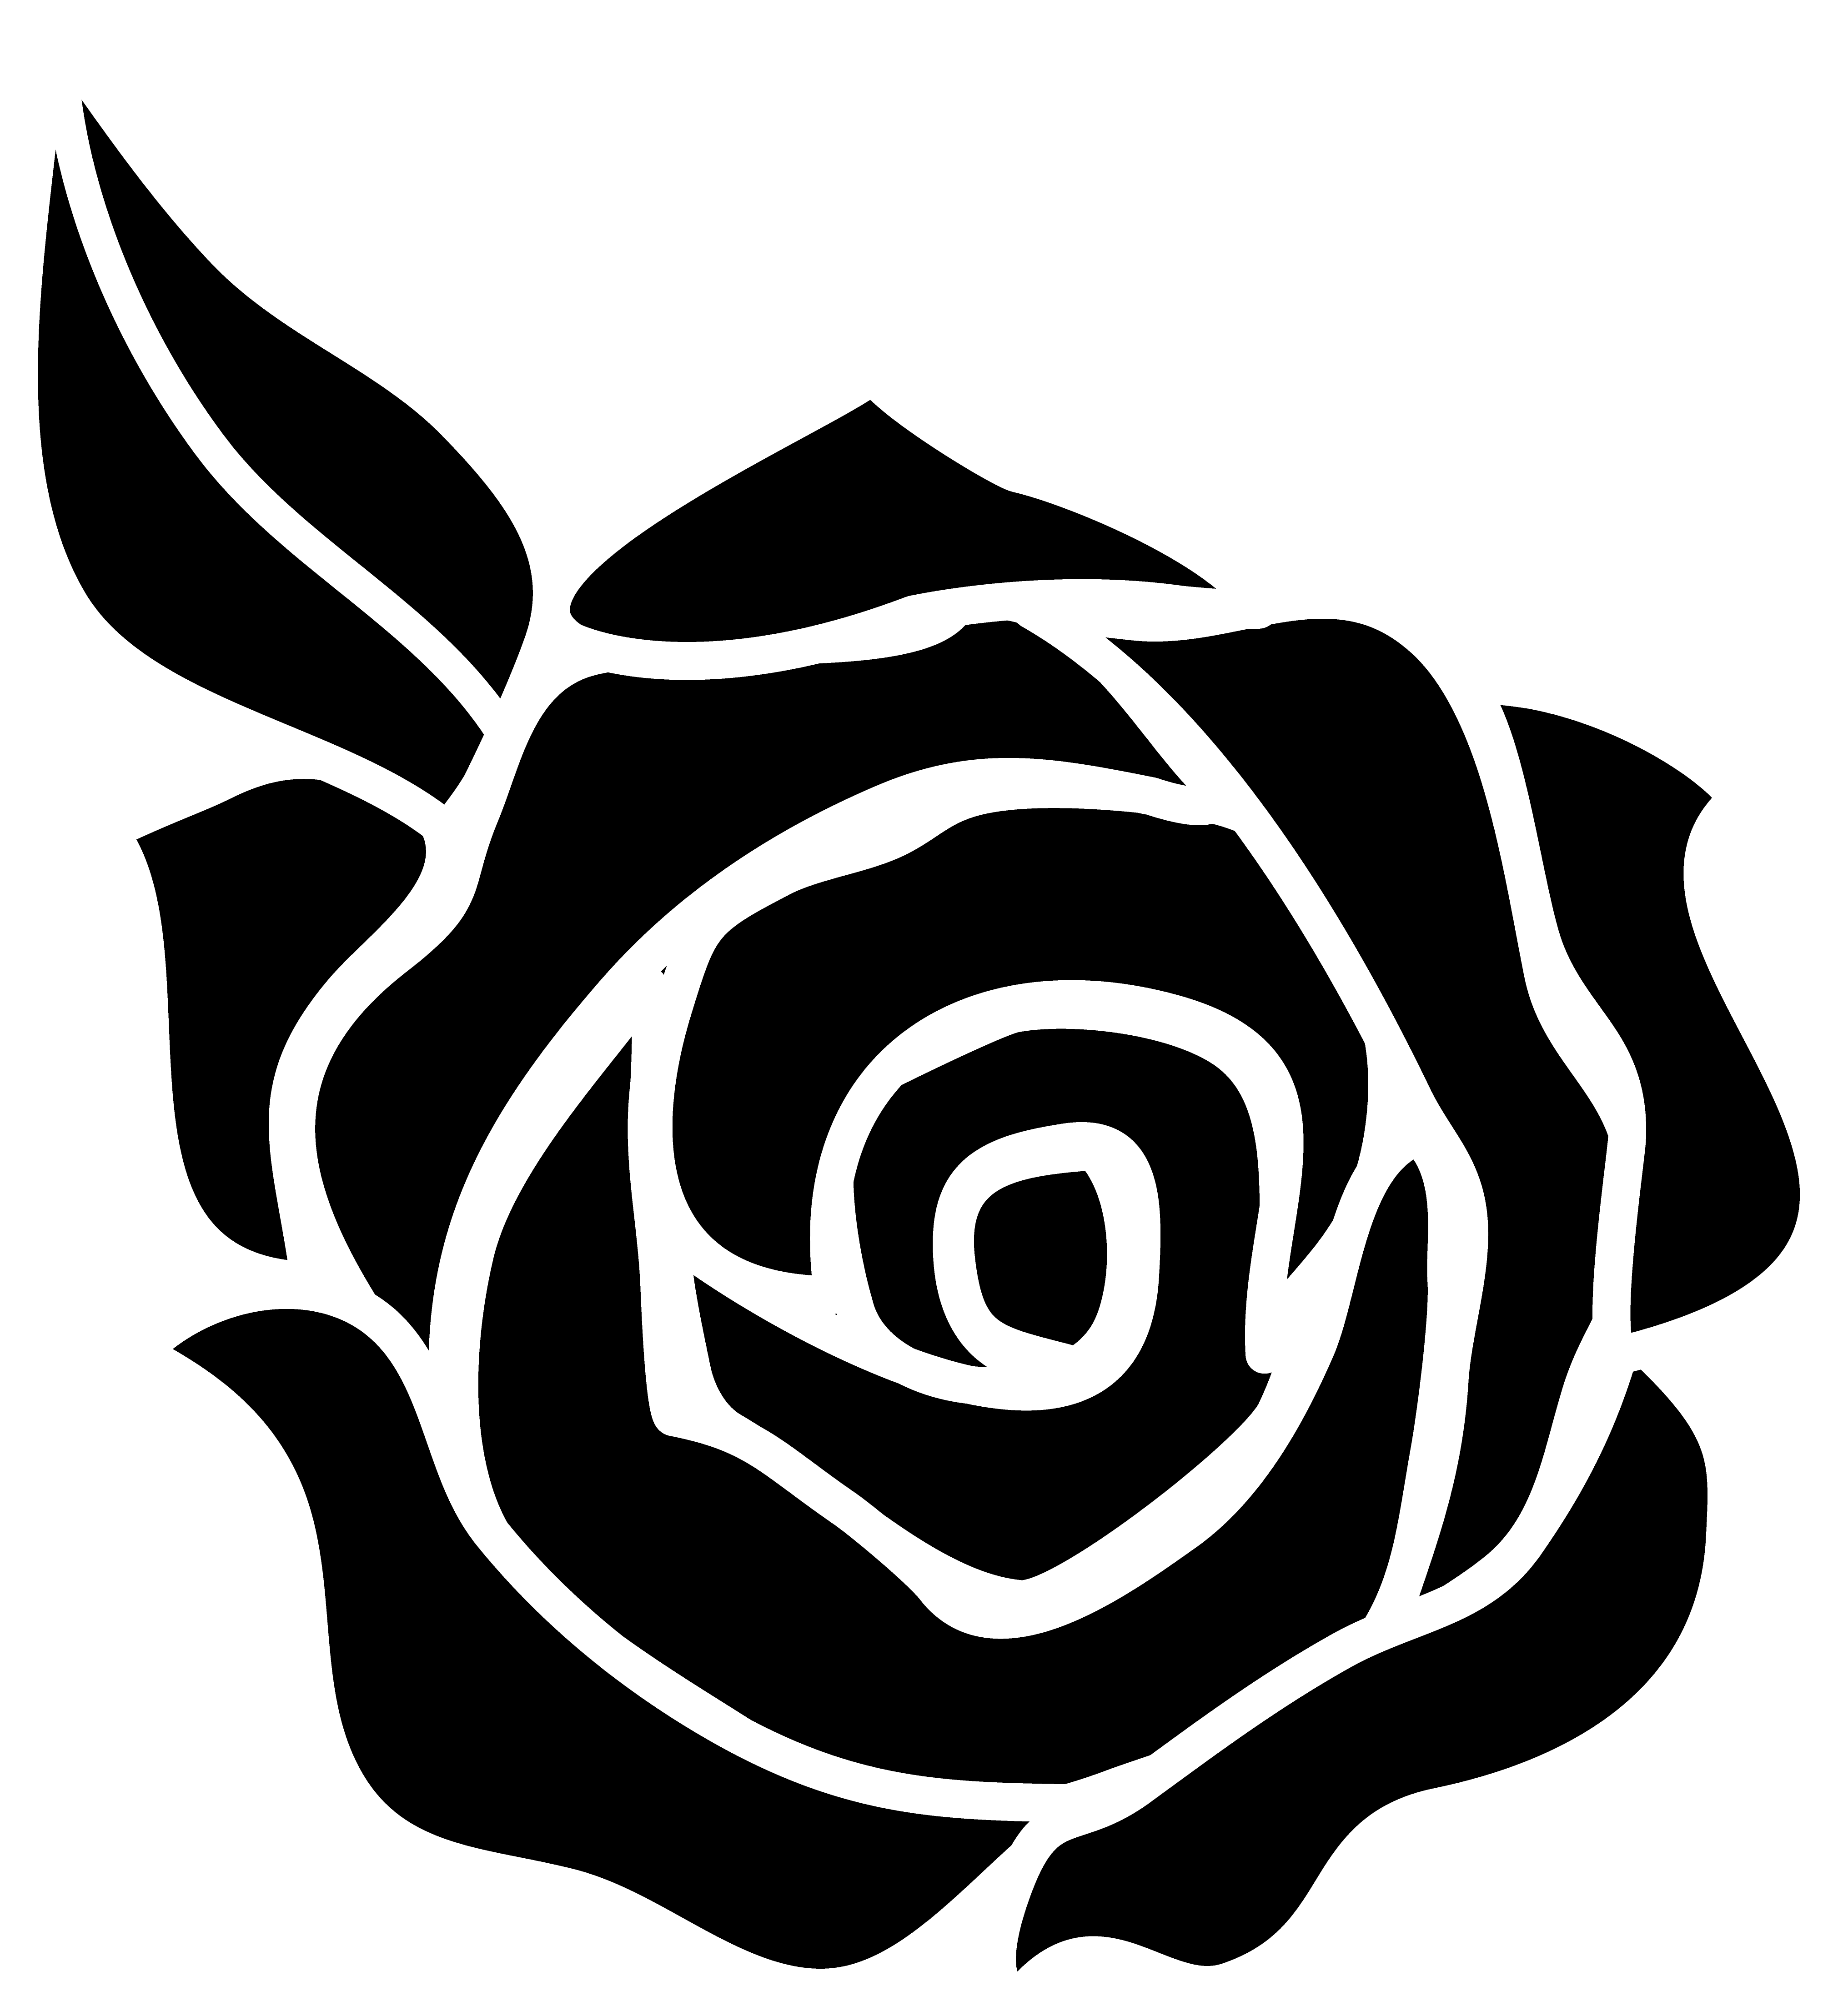 Clipart roses easy. Rose silhouette at getdrawings